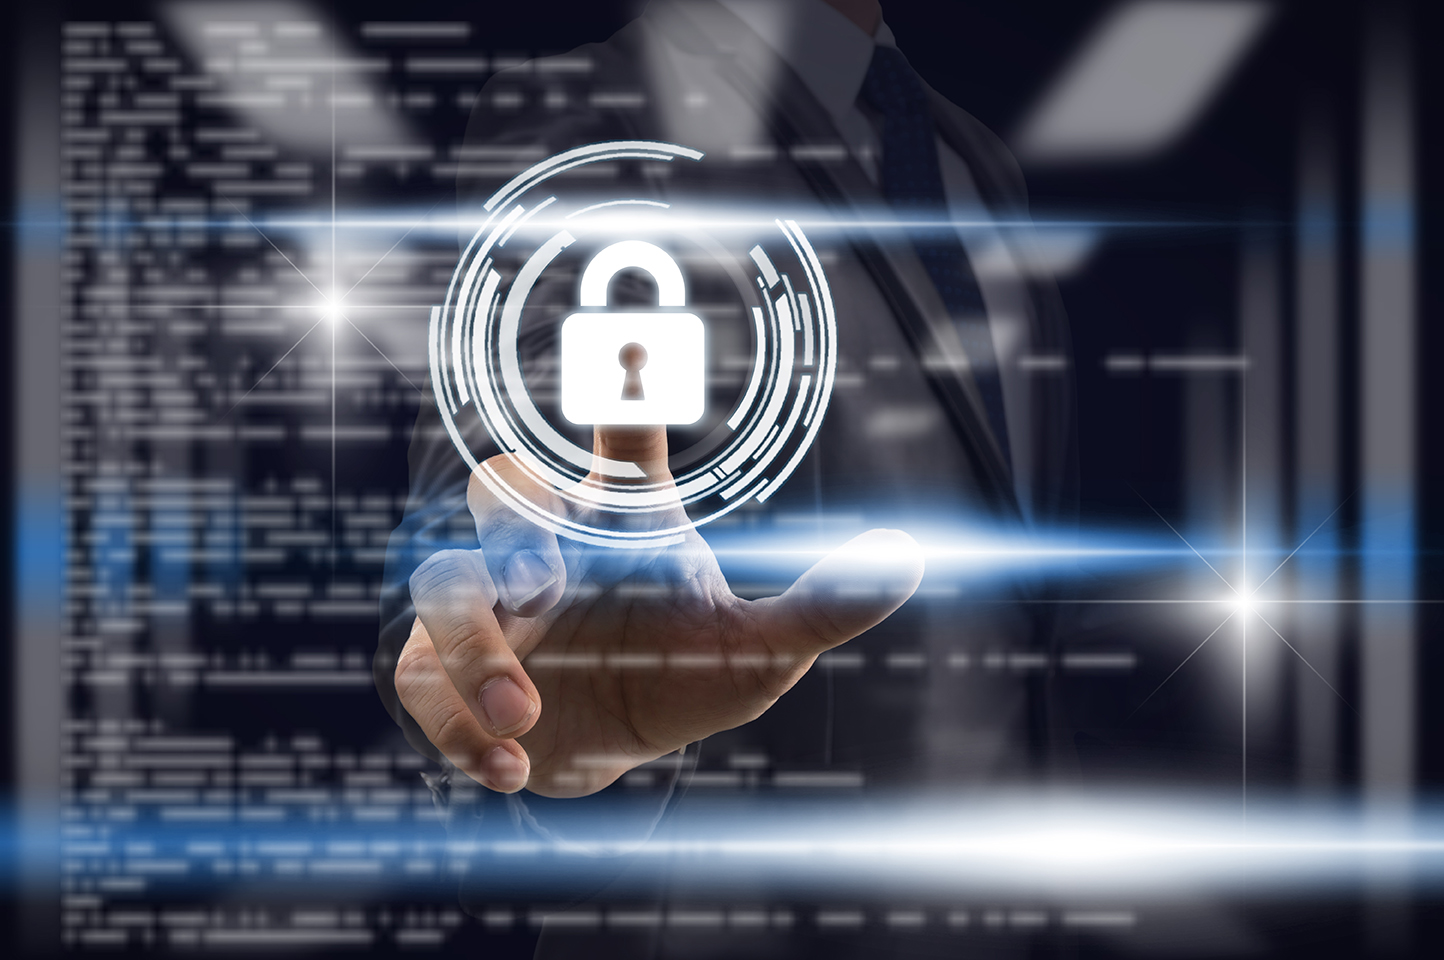 Nuove certificazioni europee - Cybersecurity Act